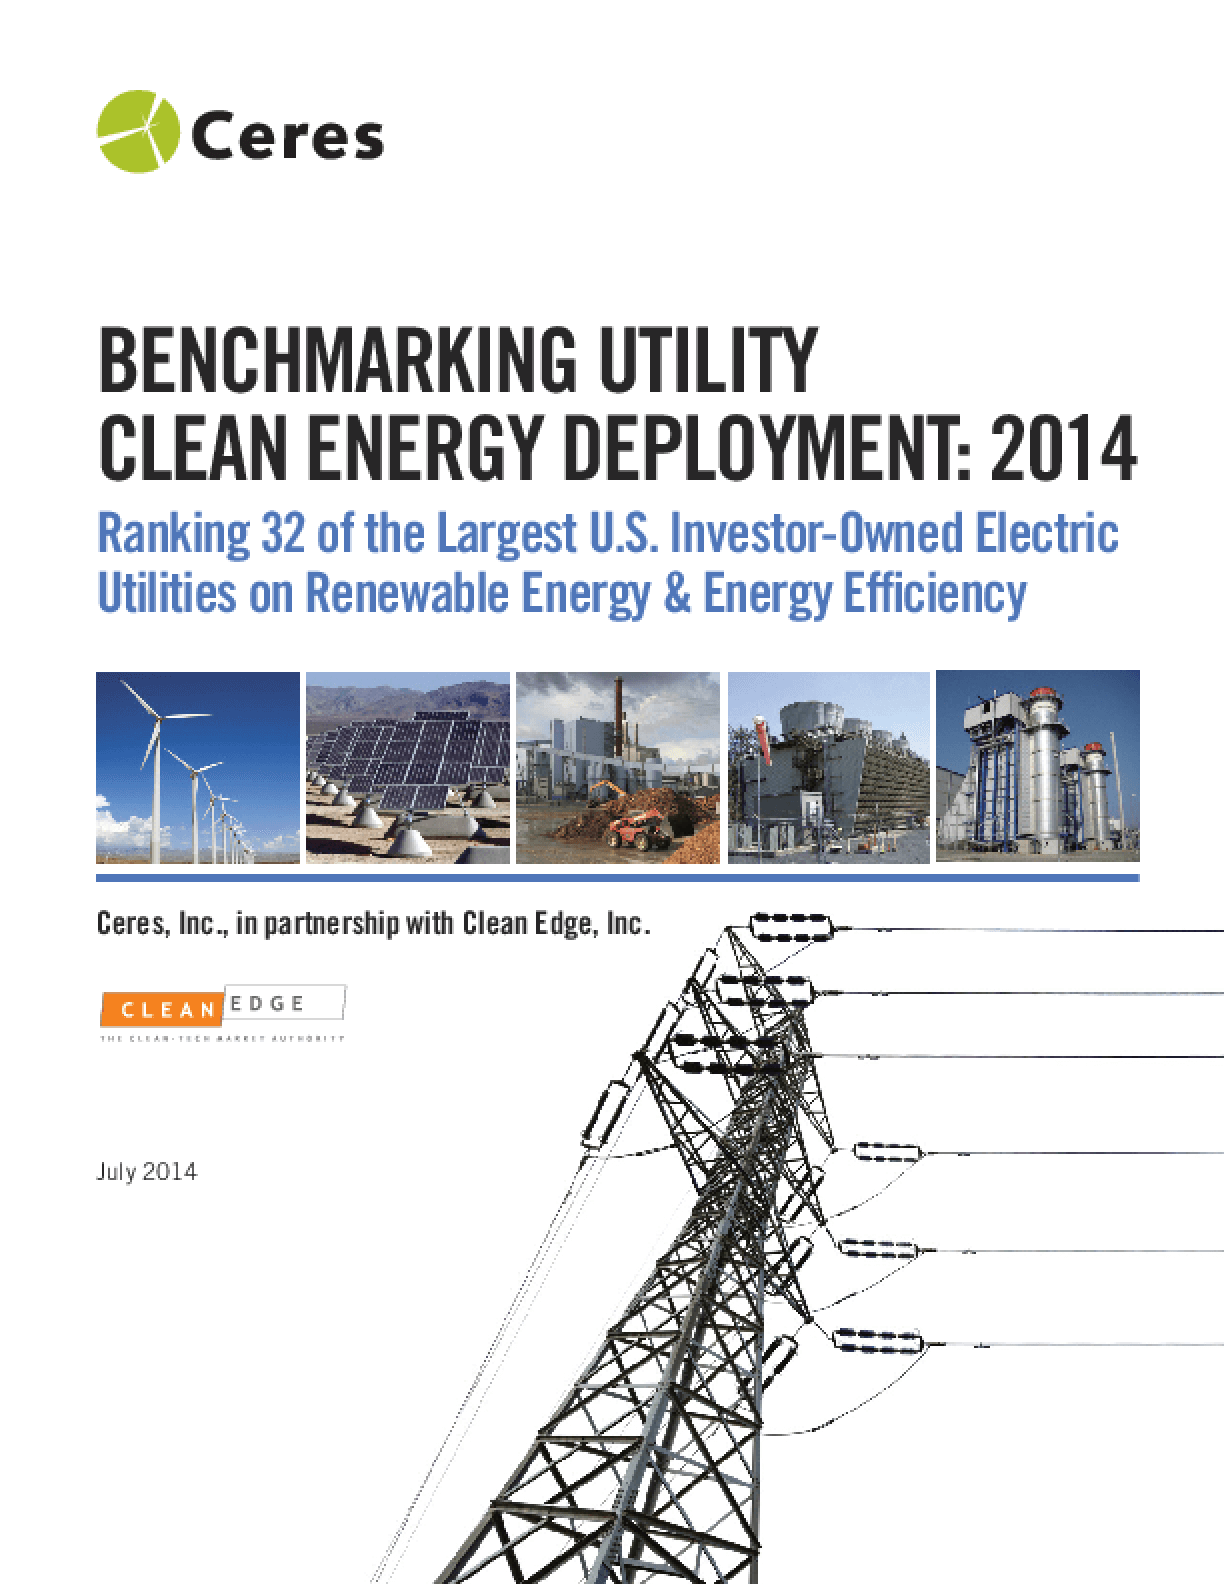 Benchmarking Utility Clean Energy Deployment: 2014